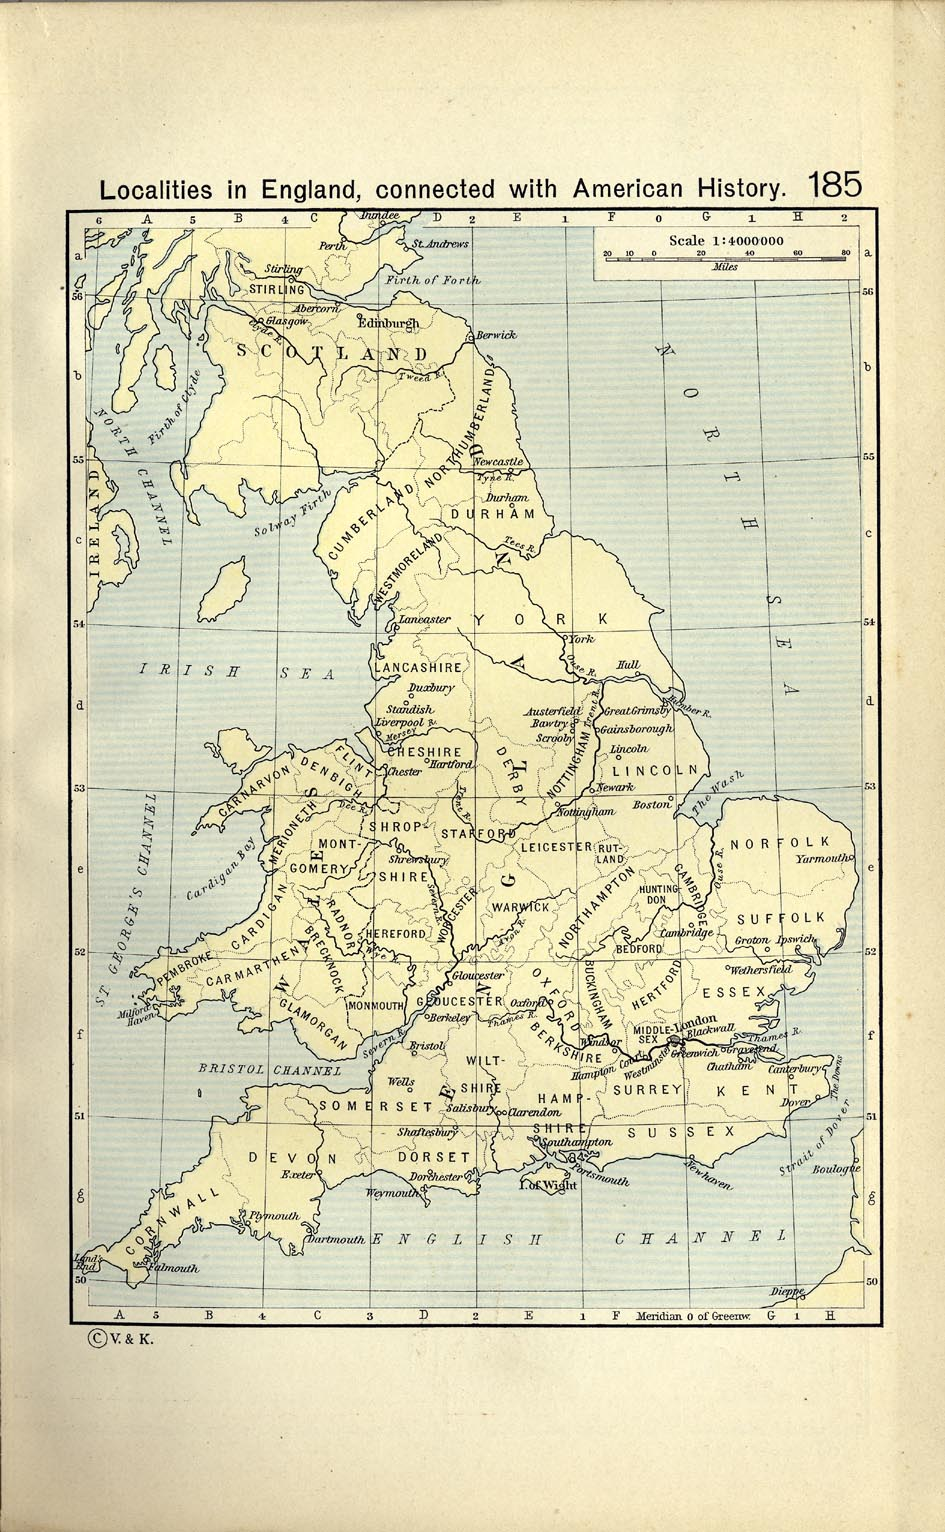 Localities in Inglaterra connected with American History.